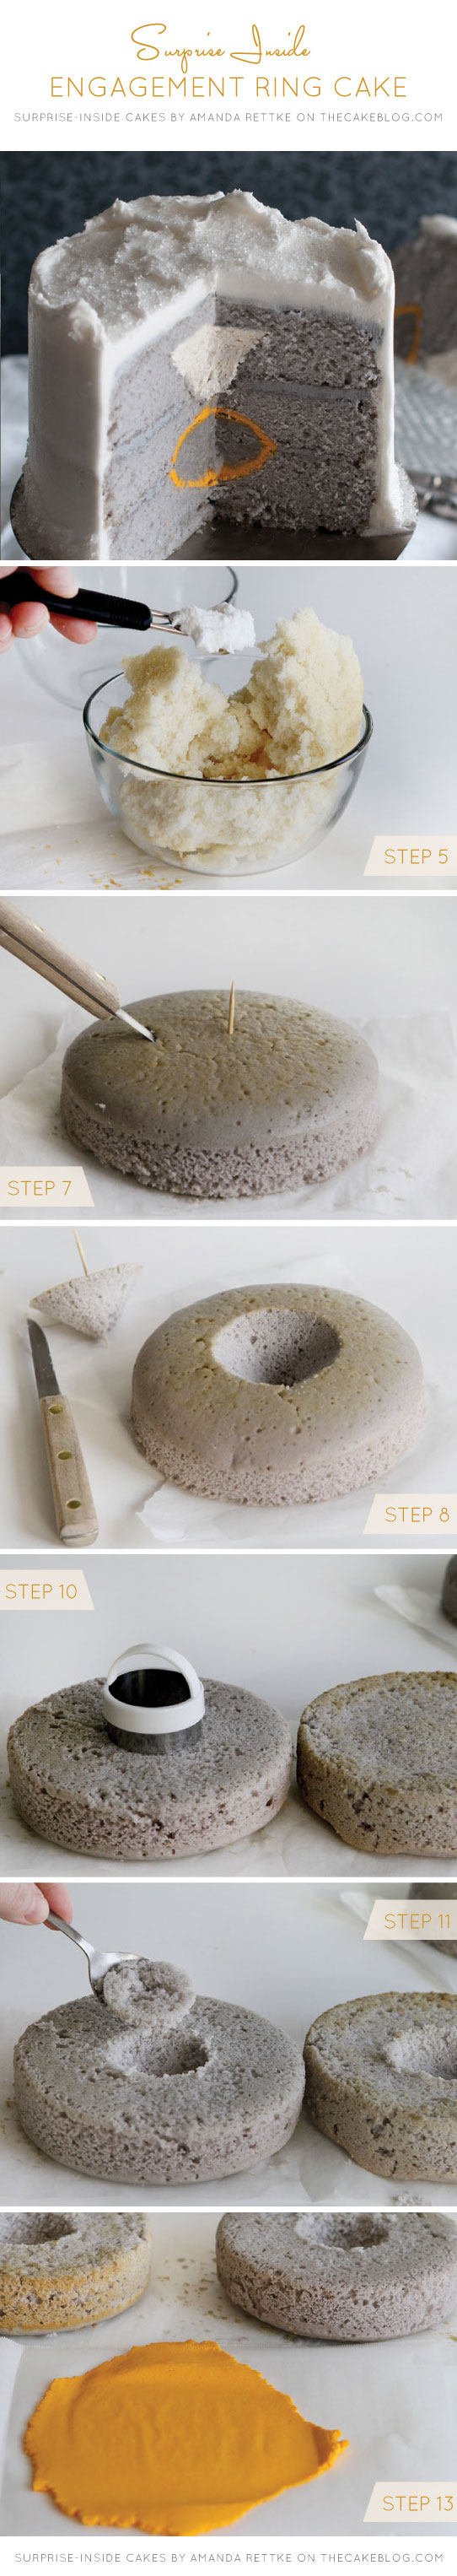 Learn to make this Surprise-Inside Engagement Ring Cake | by Amanda Rettke, author of Surprise-Inside Cakes | on TheCakeBlog.com